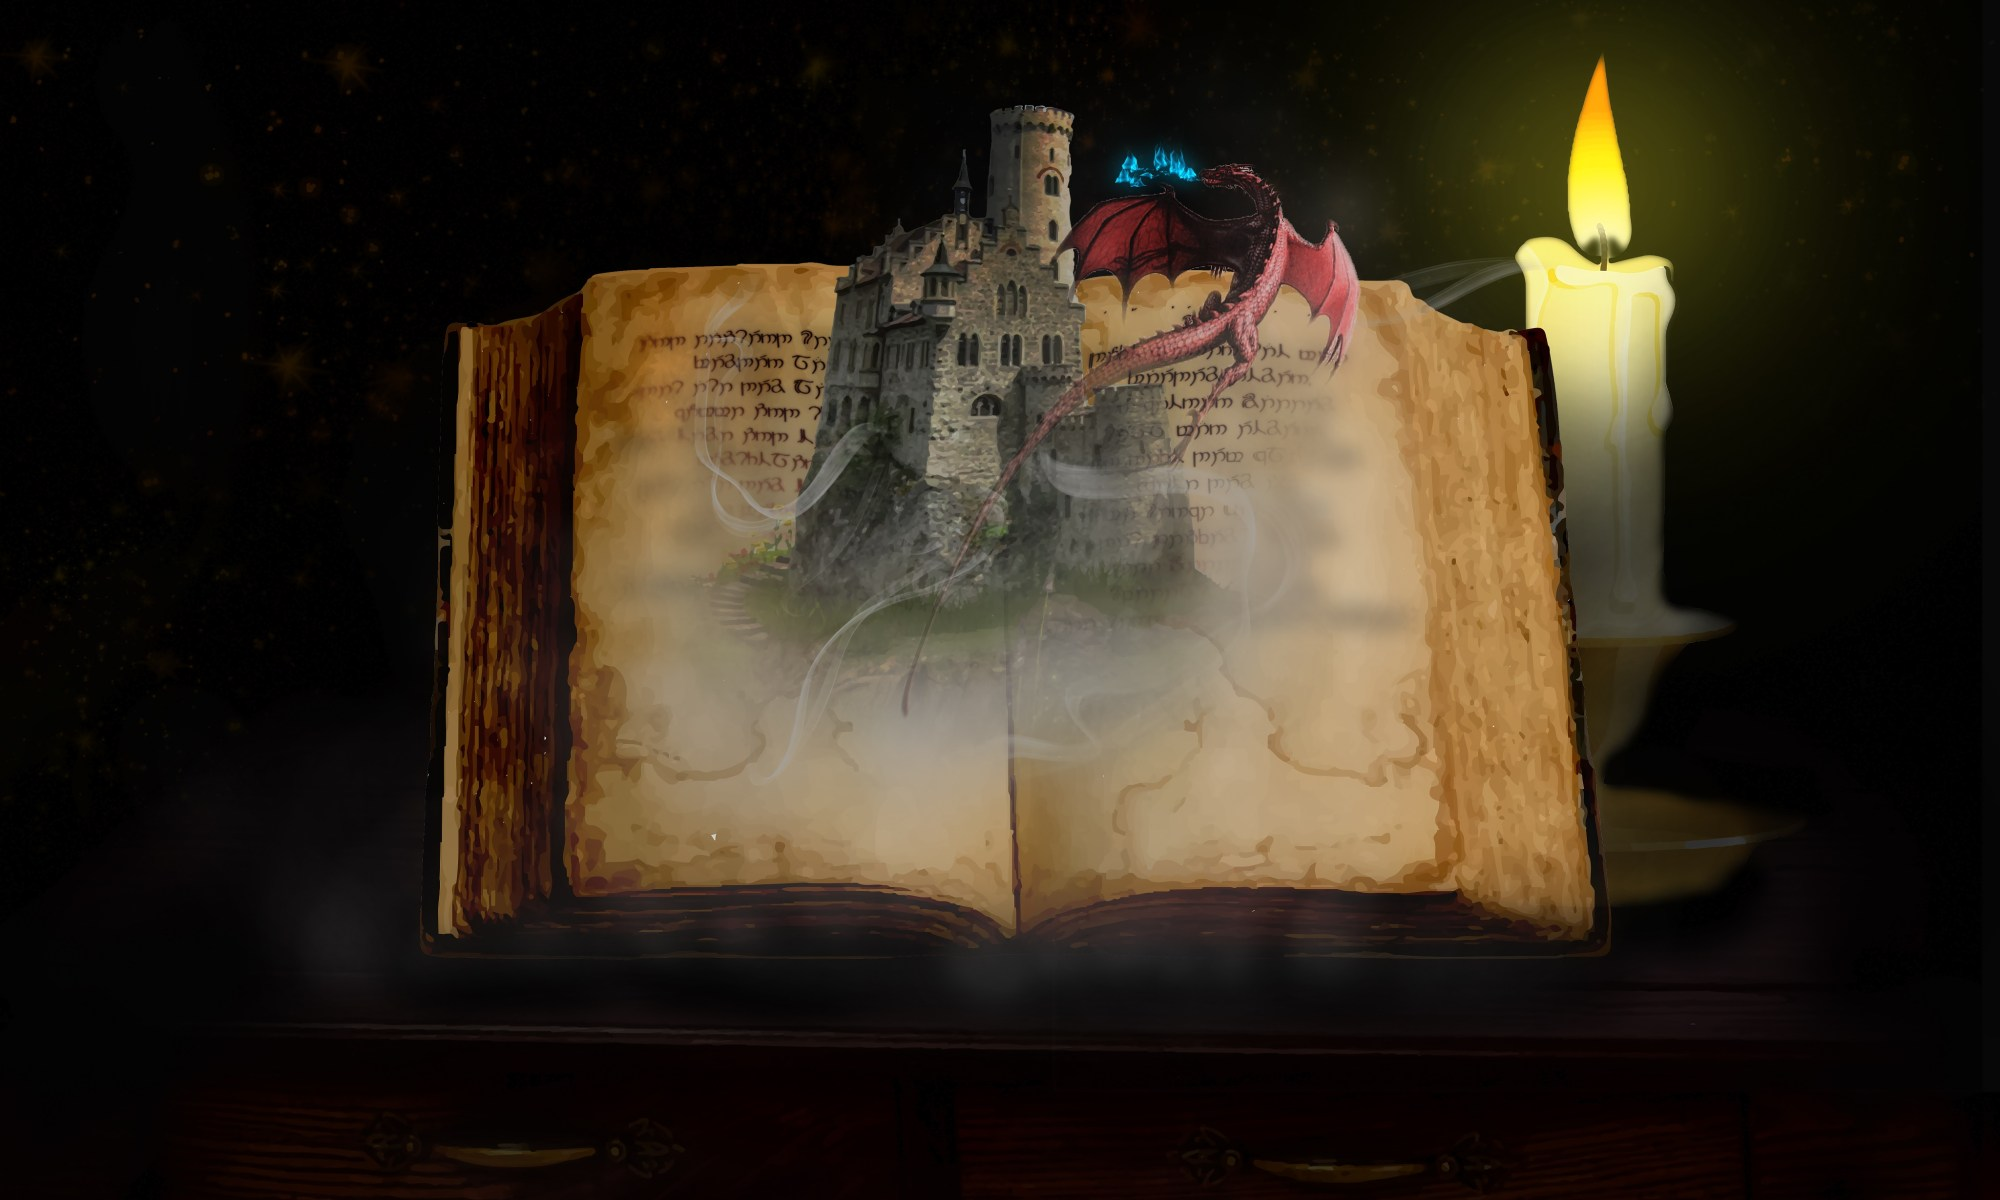 picture of an old book with a castle emerging from it and a candle in the background